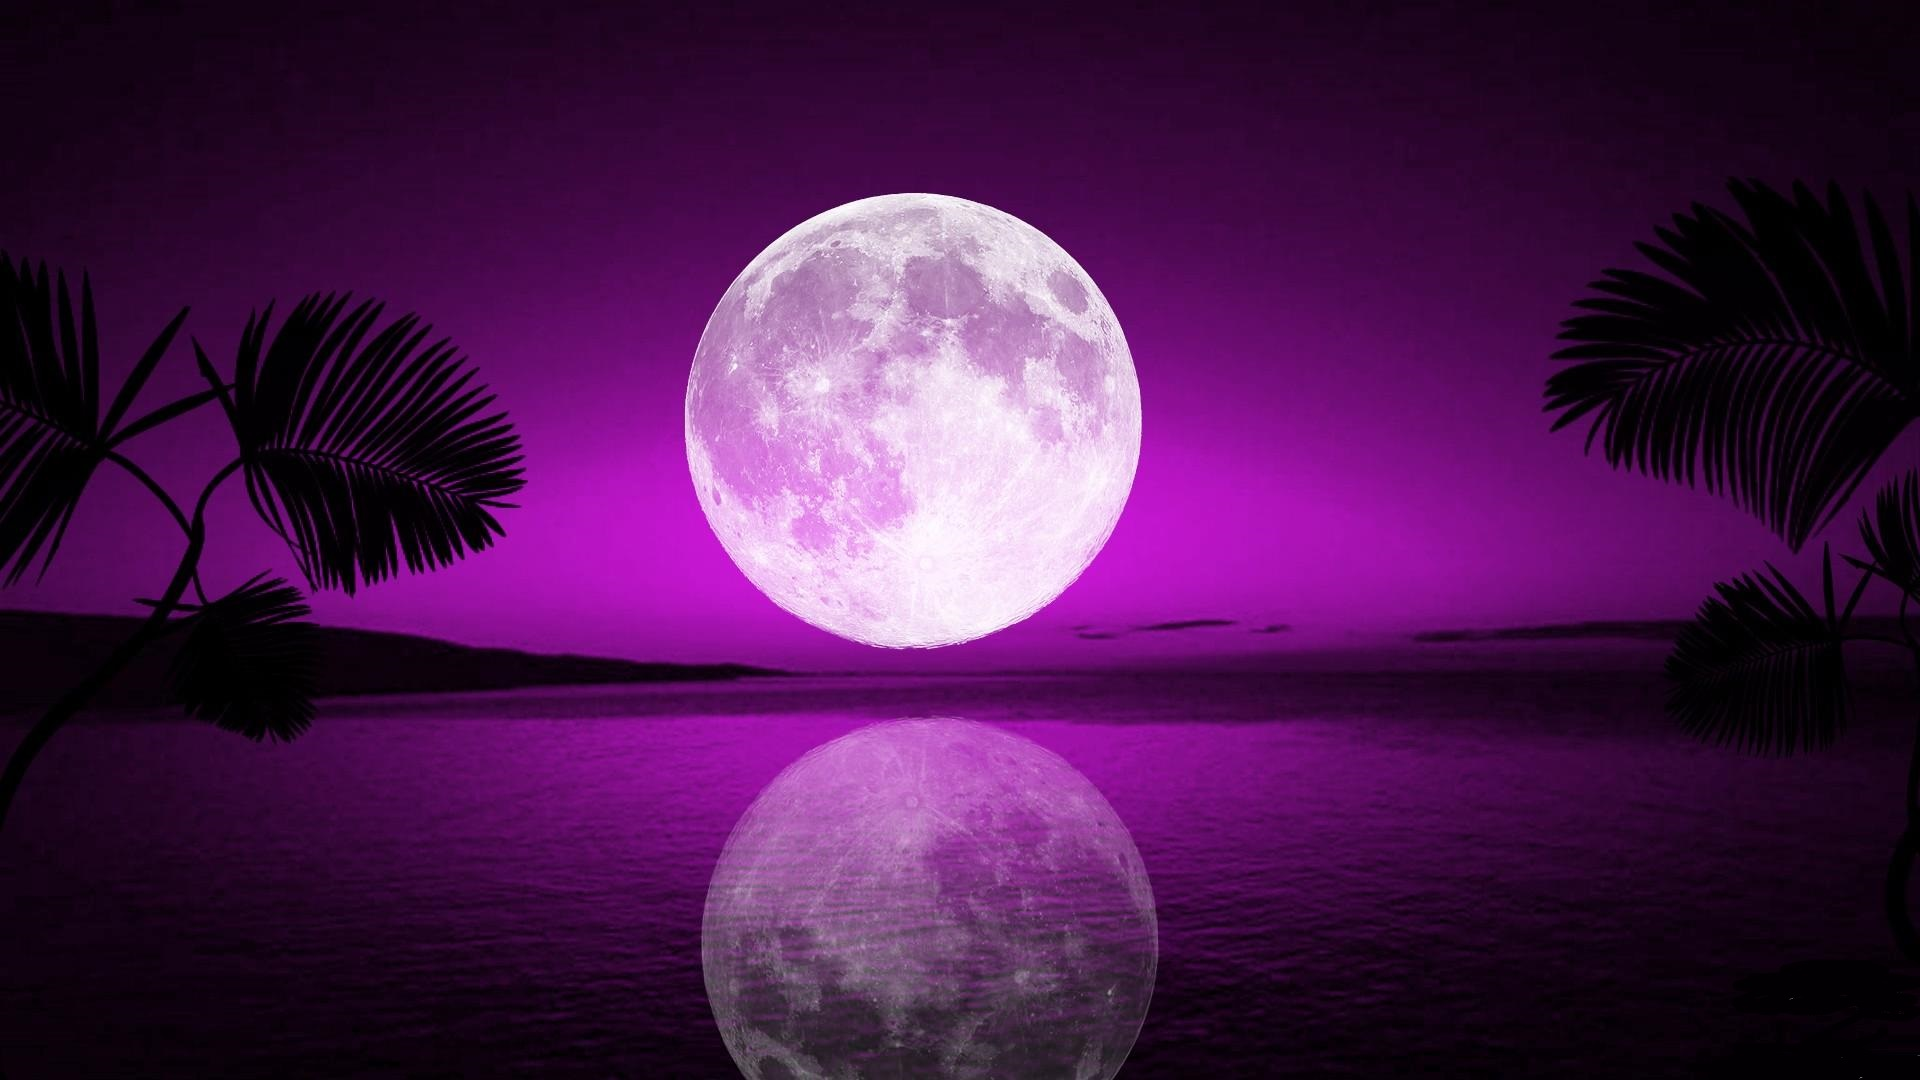 tropical-moon-free-hd-wallpapers-for-desktop